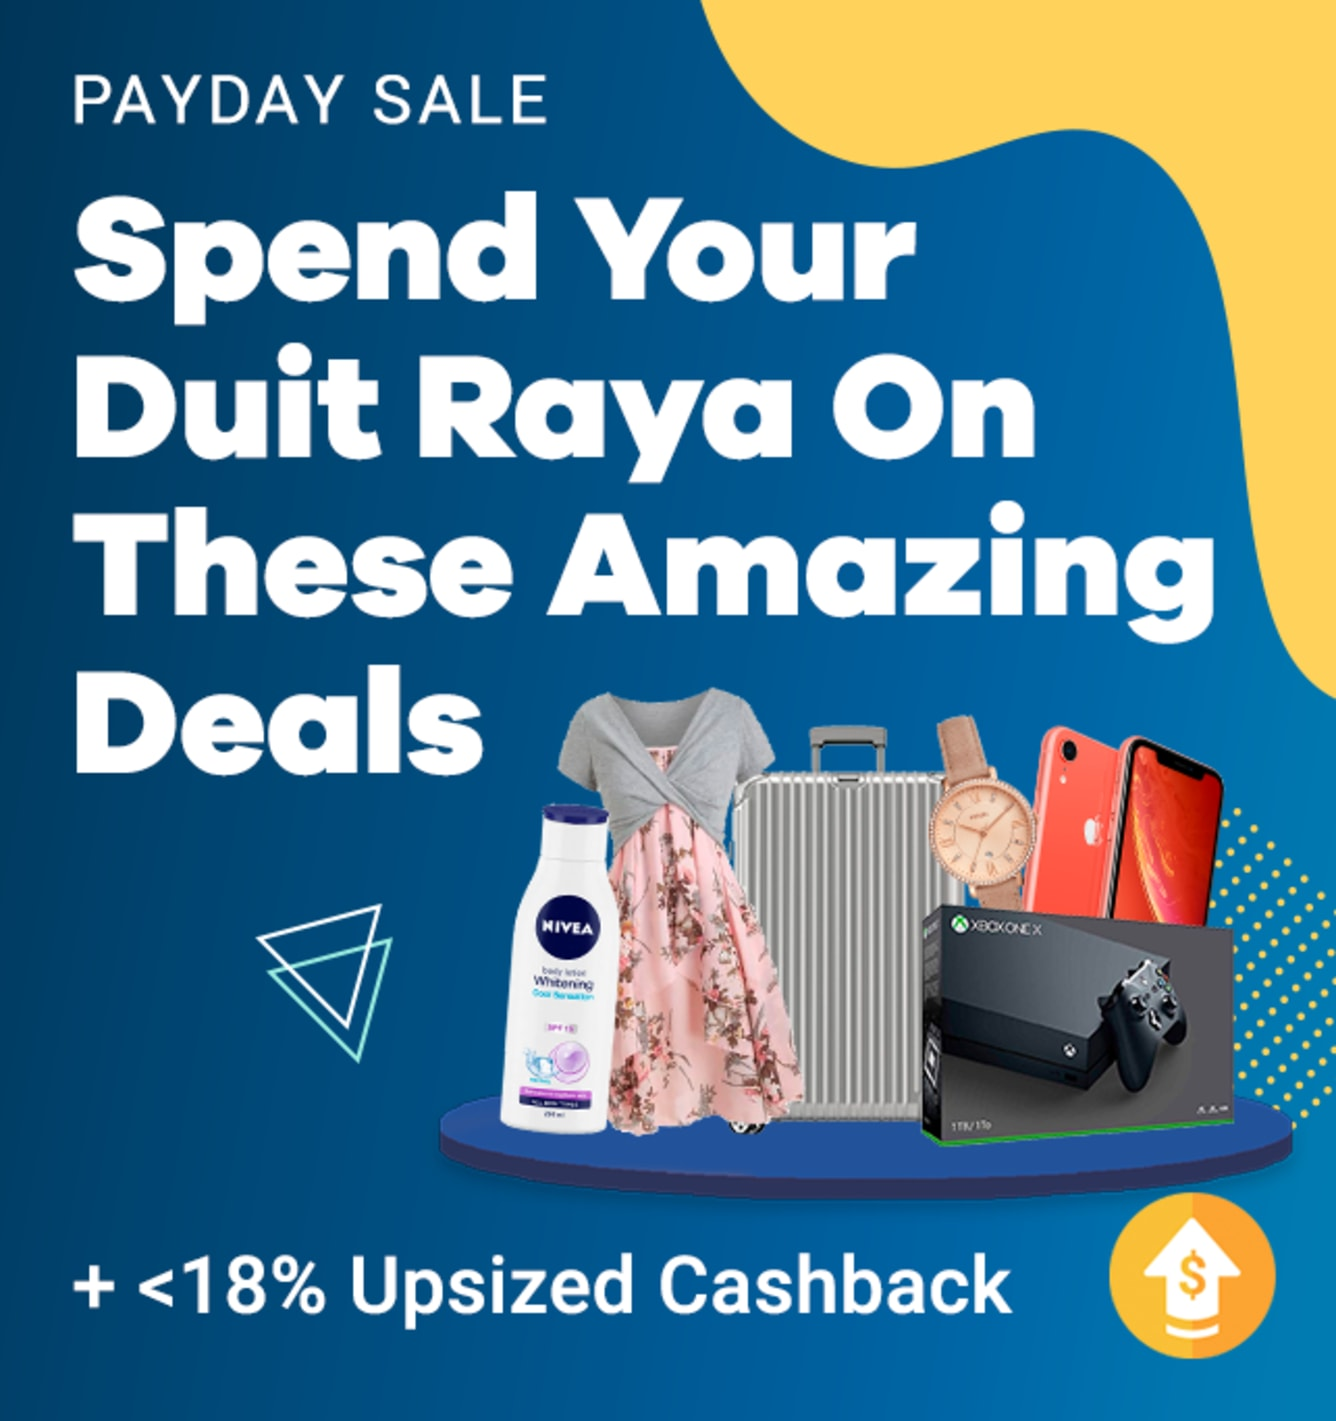 Payday Sales, Offers & Coupons + Cashback